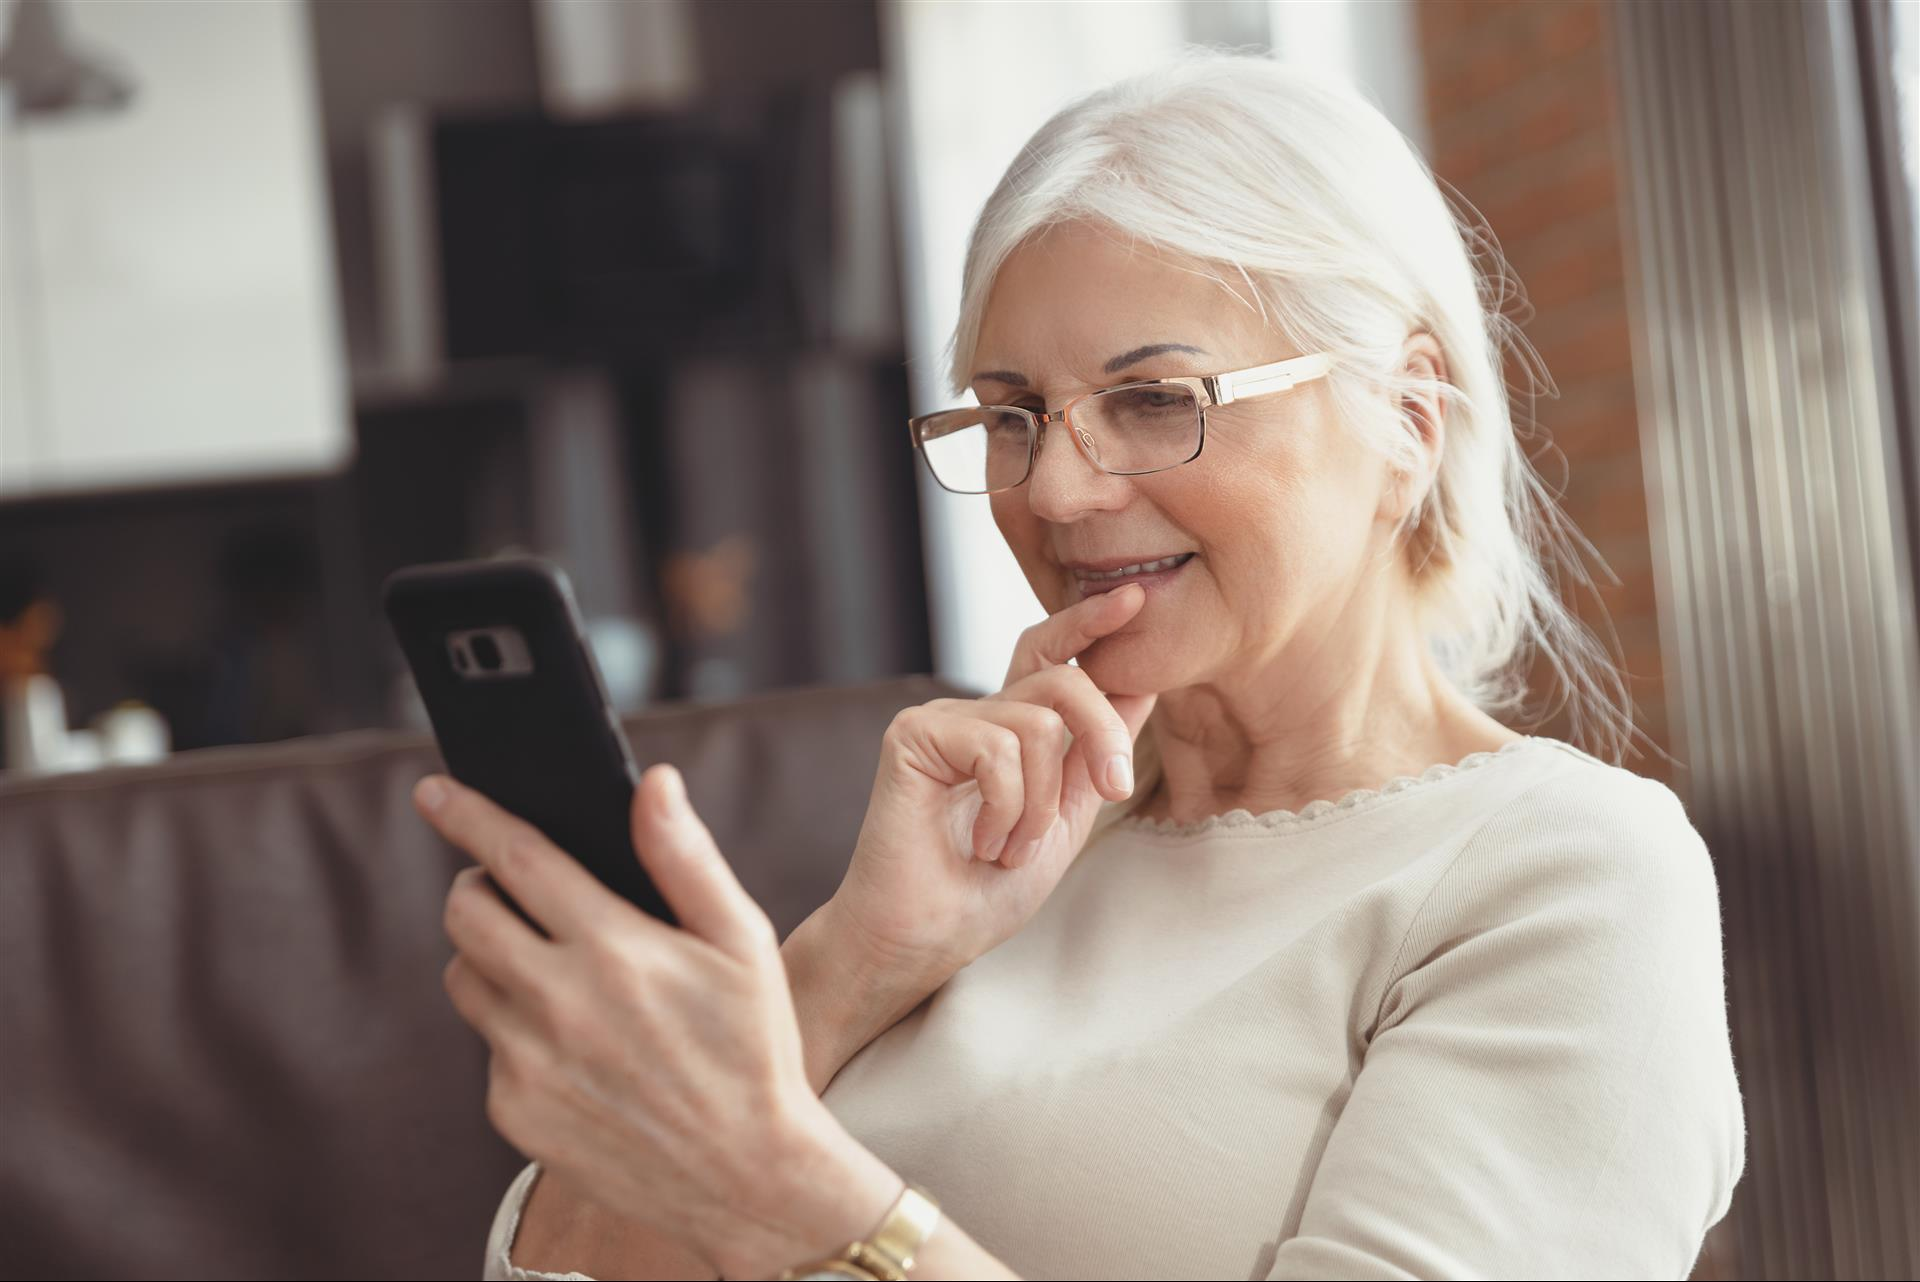 4 SOCIAL MEDIA TIPS FOR CHRISTIAN SENIORS